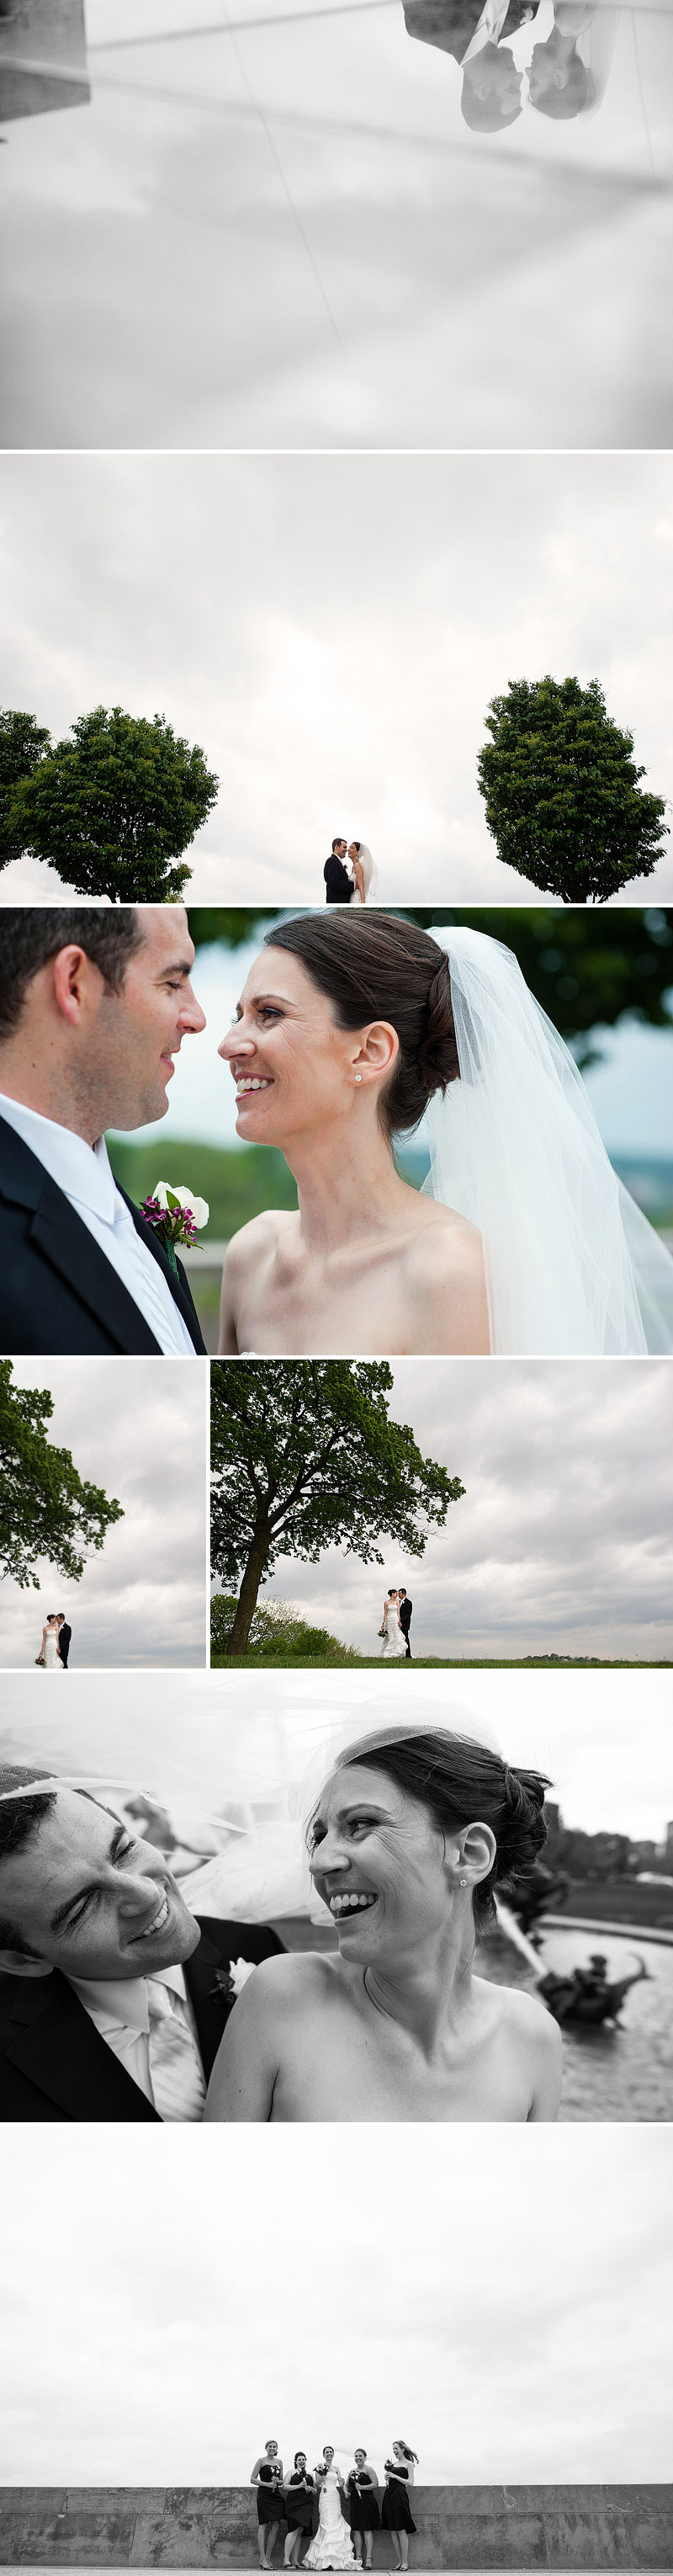 Kansas City wedding photographers.